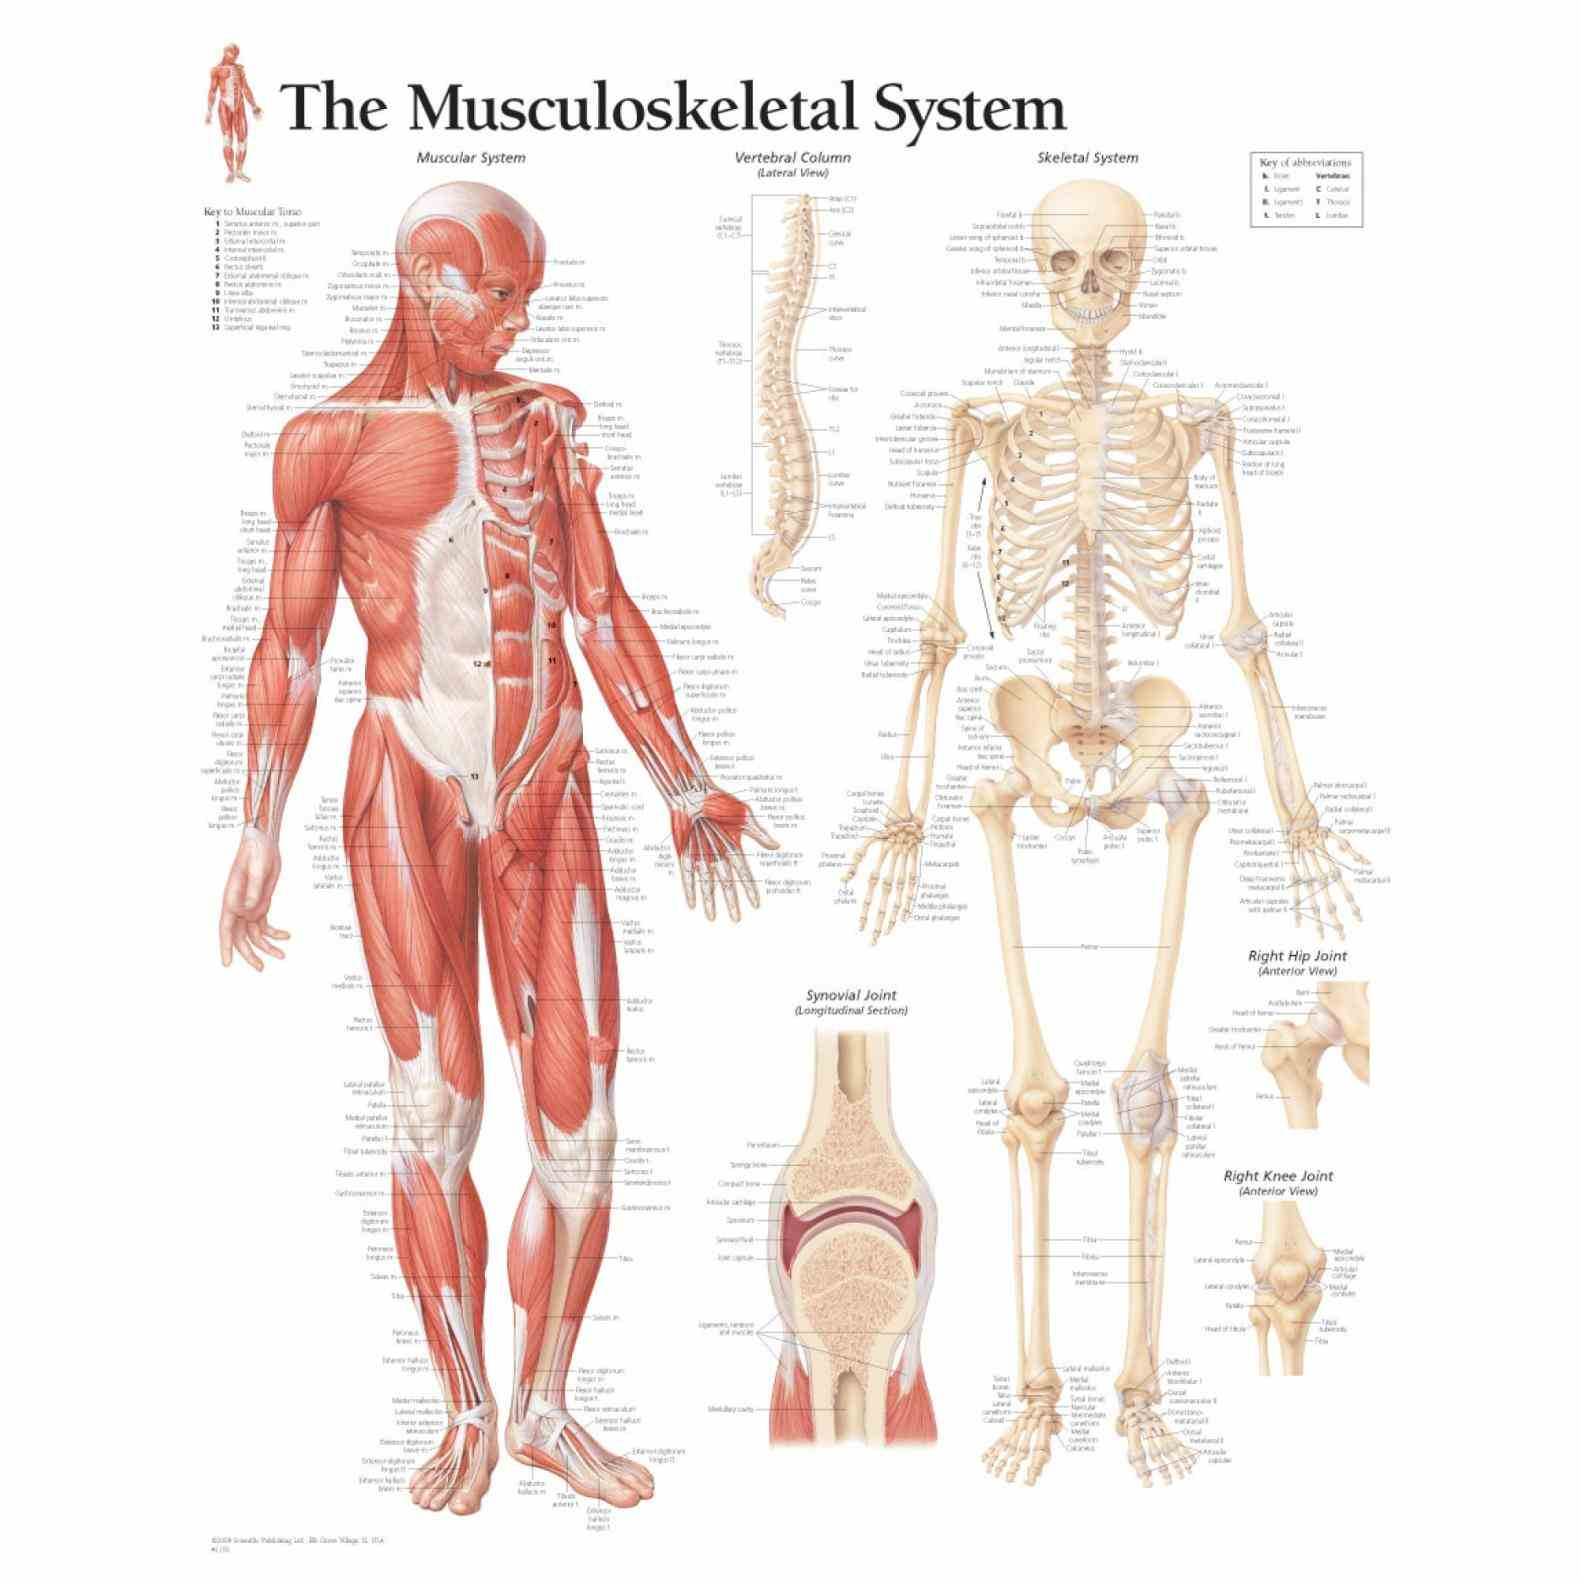 the Muscular Skeletal System human musculoskeletal system is an organ that gives humans ability to move using their